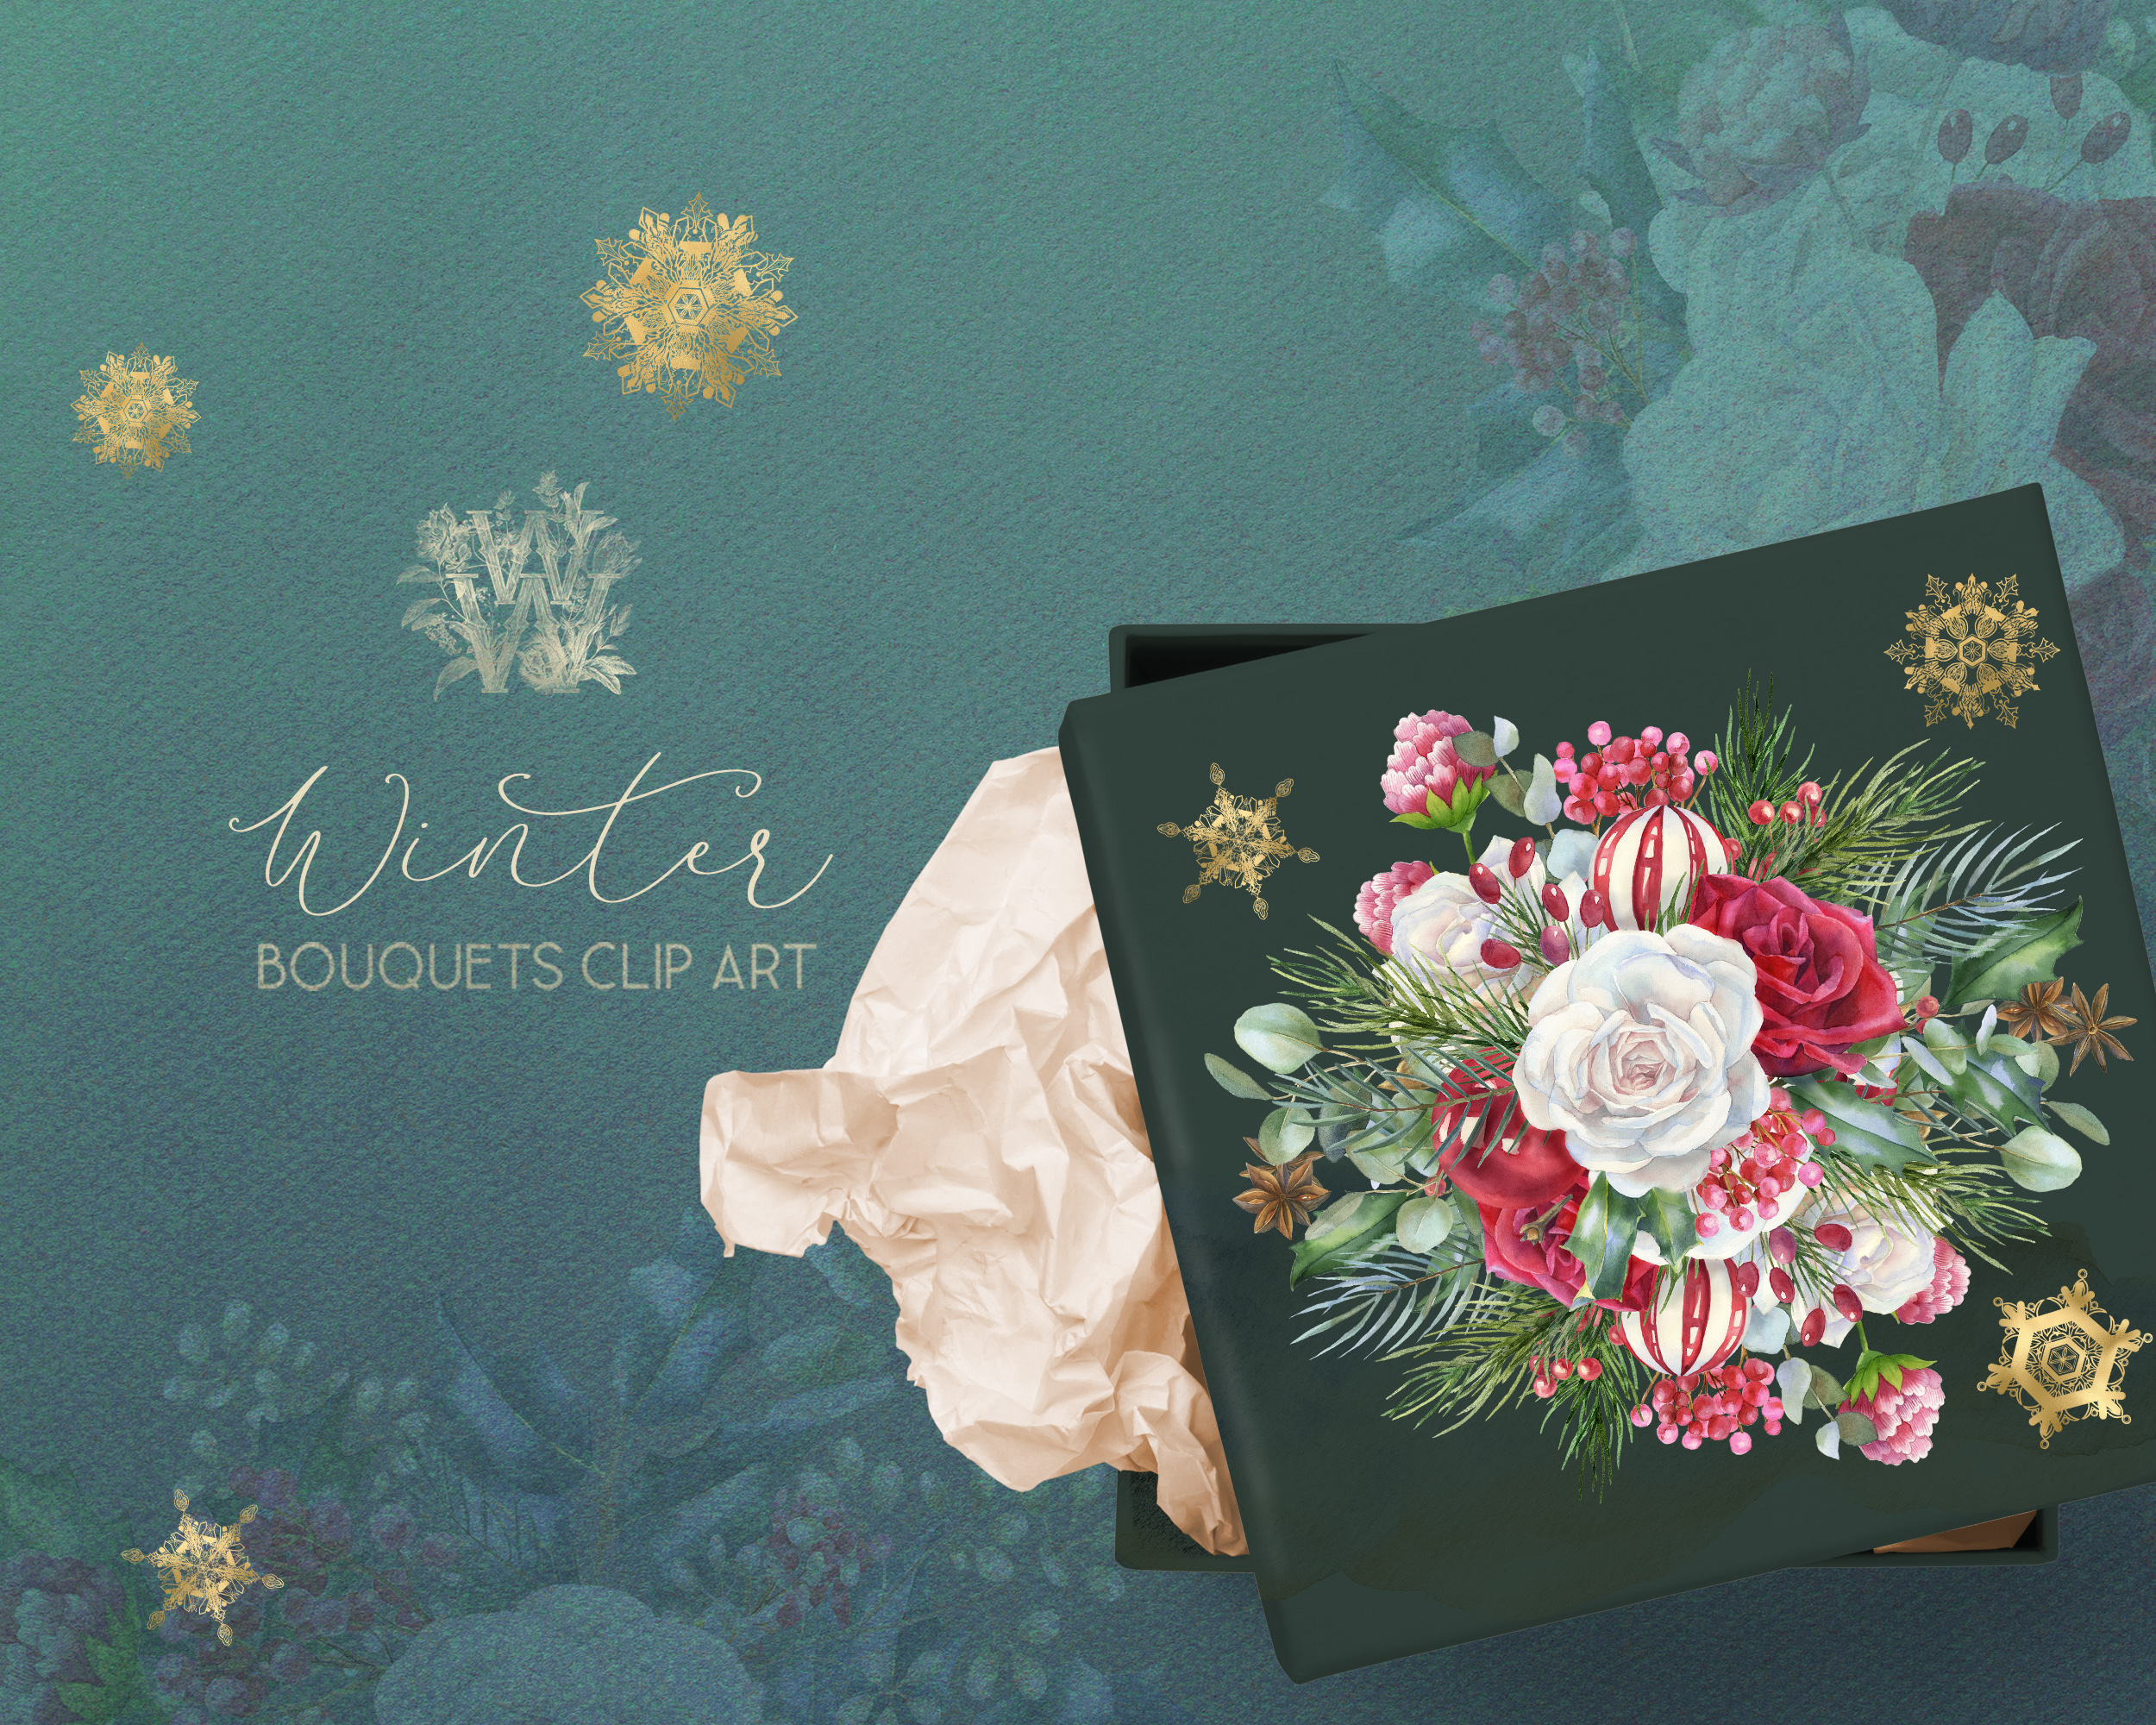 Christmas floral border clipart, Watercolor winter frame example image 6